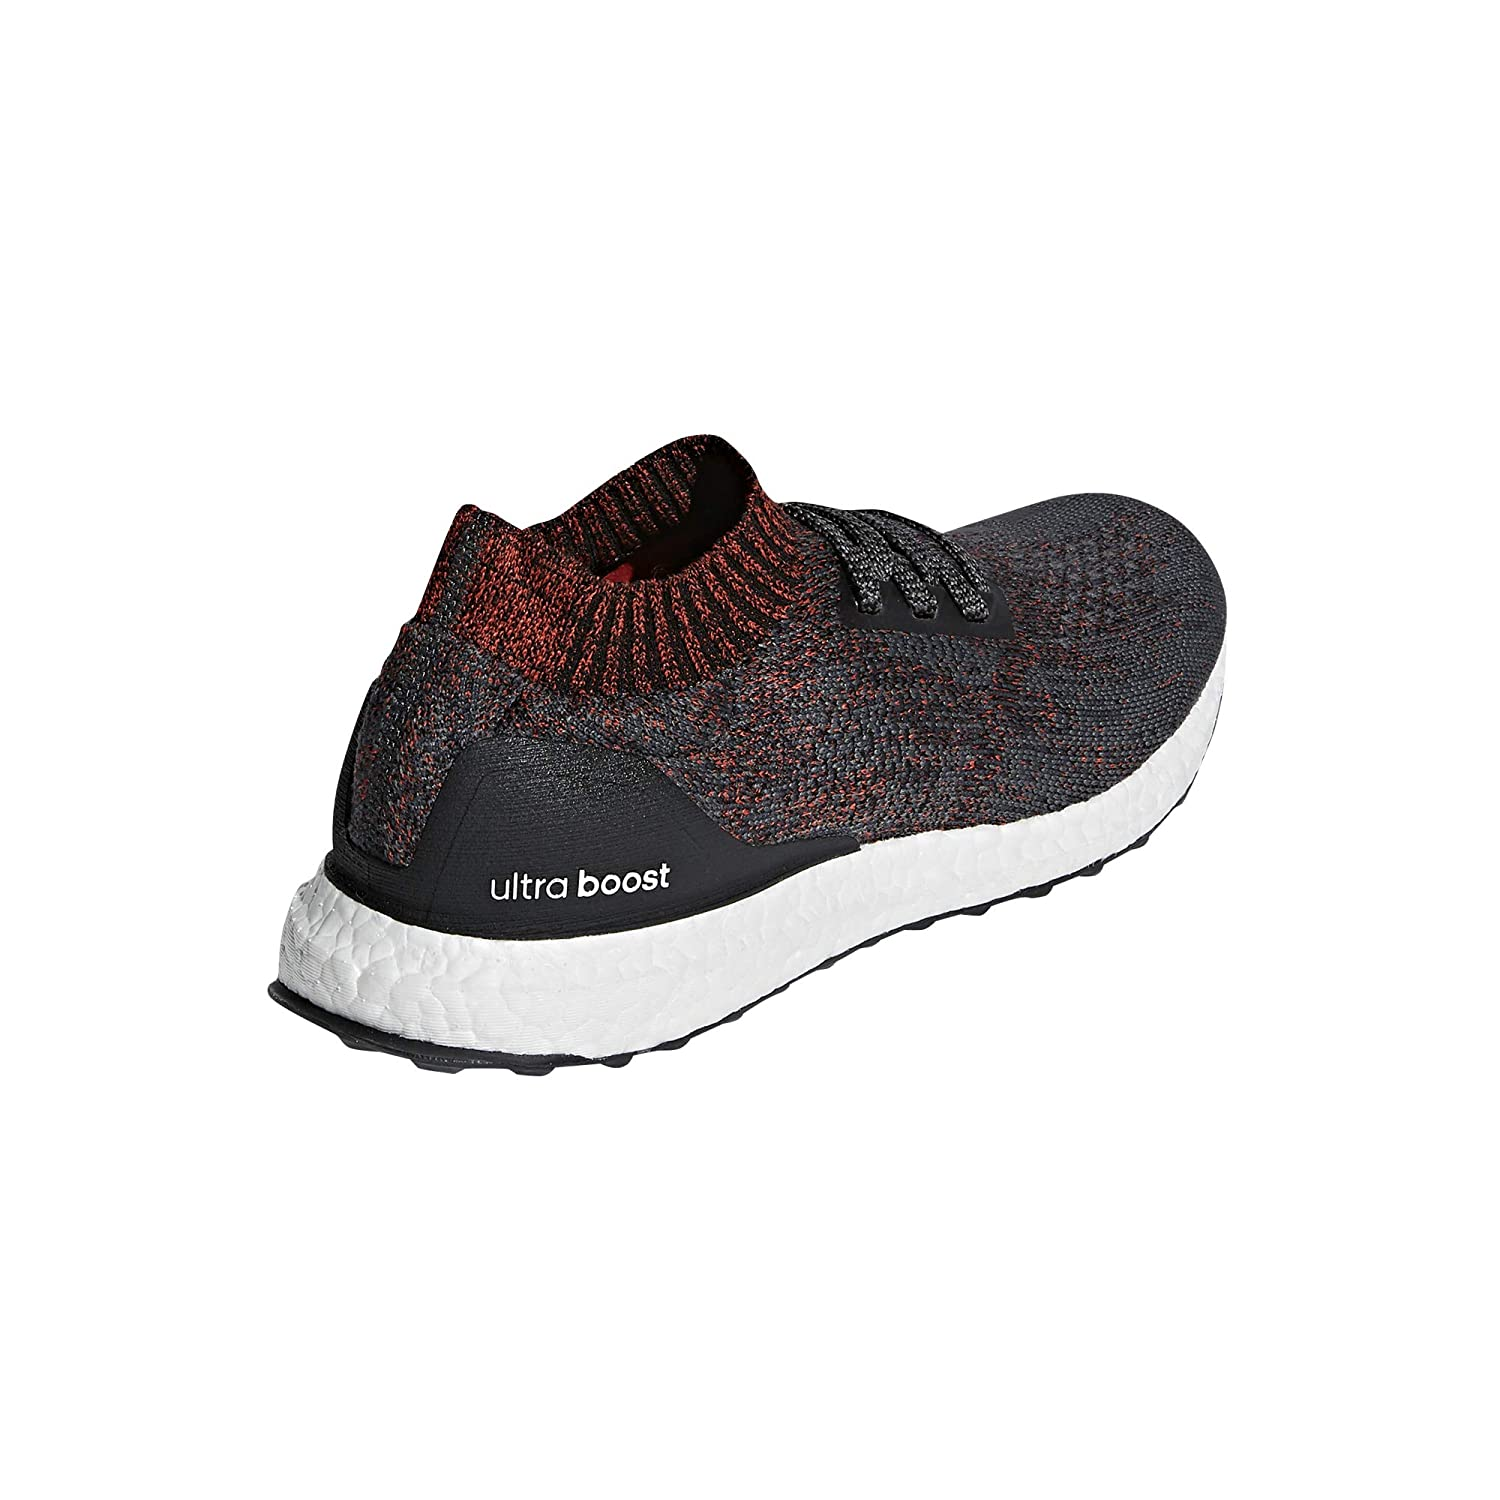 check out 0ea85 940b4 adidas Ultraboost Uncaged, Chaussures de Running Homme